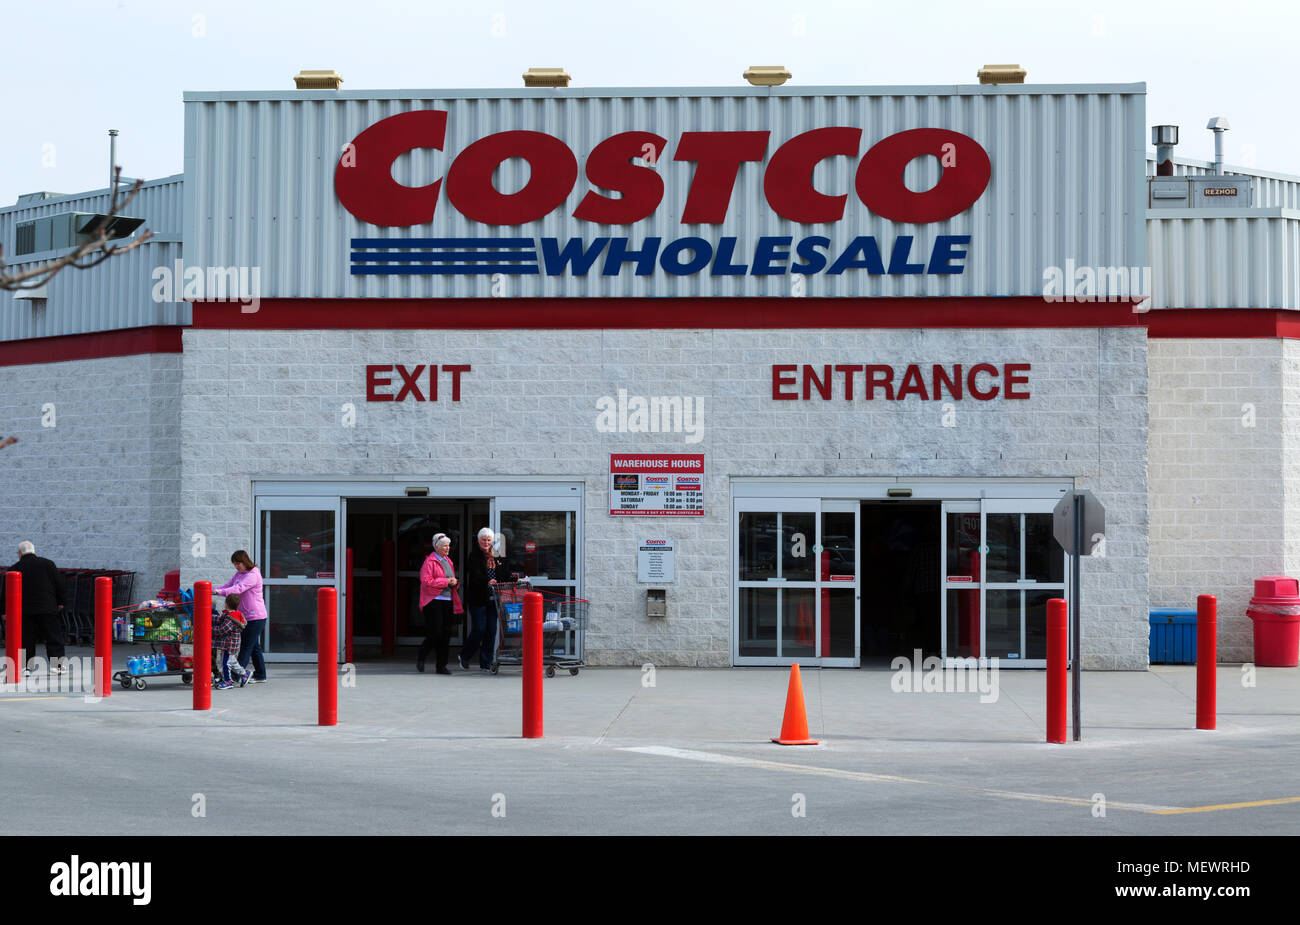 Entrance and Sign of Costco Wholesale Store Stock Photo: 181276185 ...